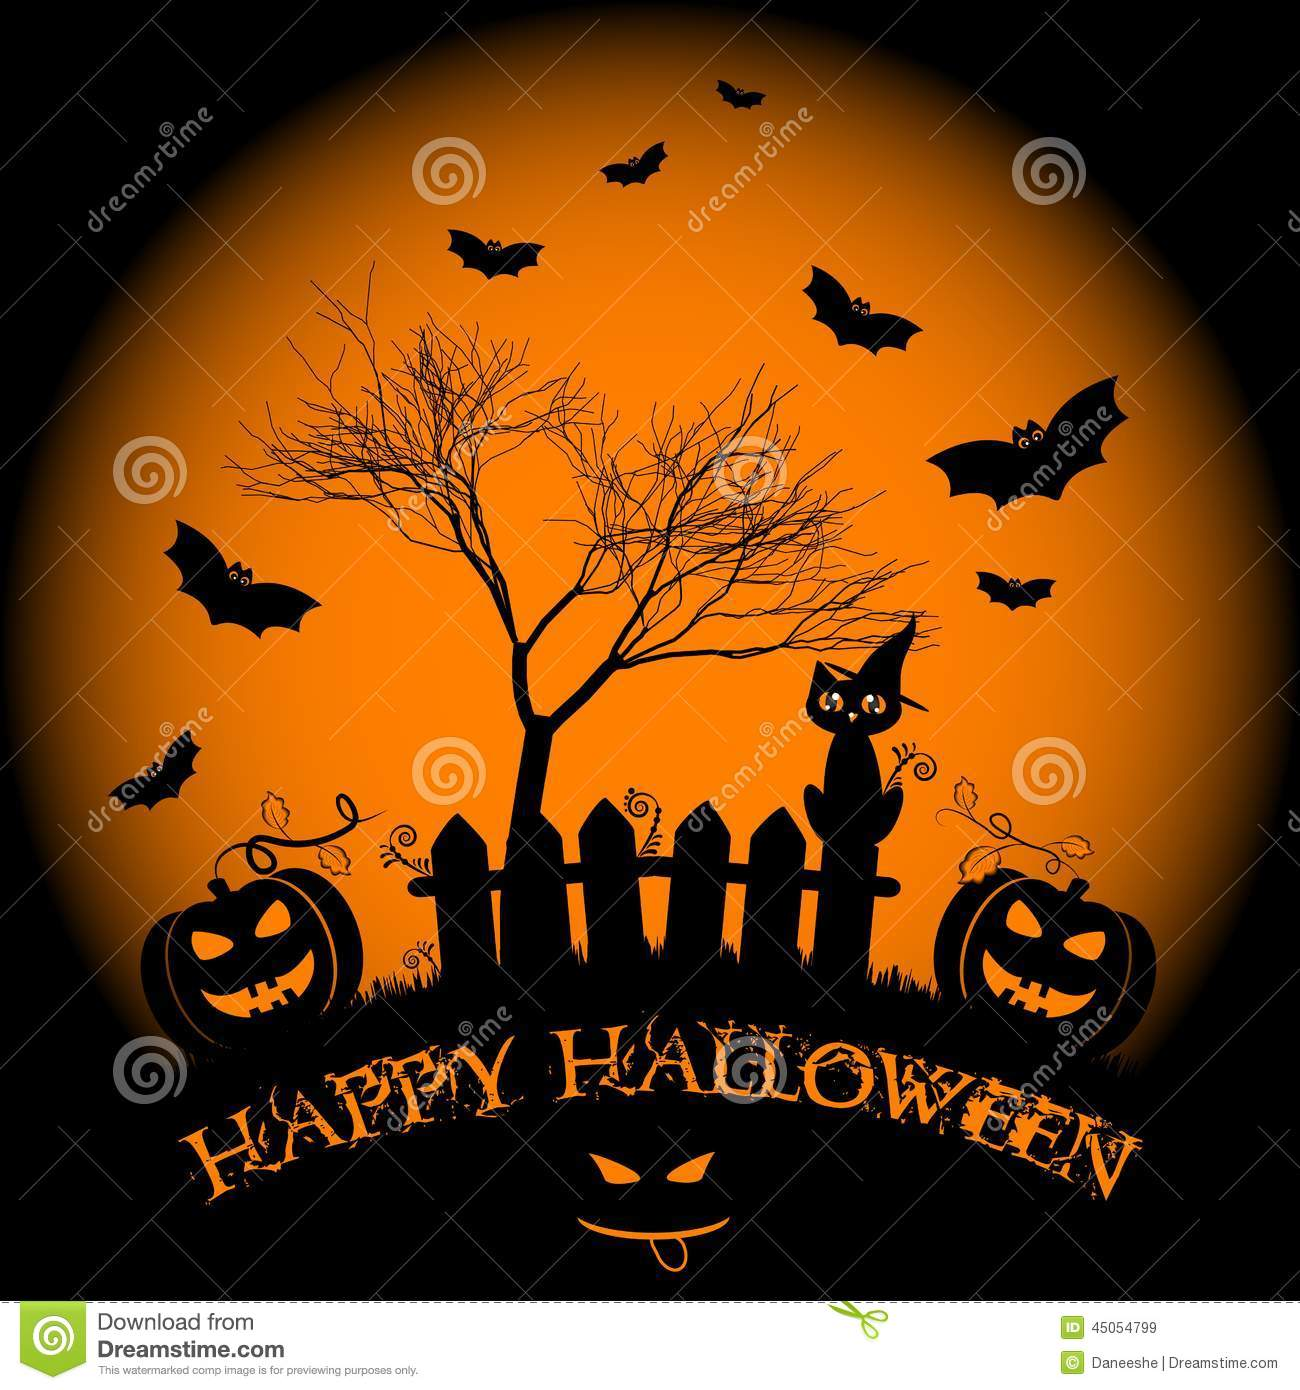 Holiday Illustration On Theme Of Halloween. Wishes For Happy Halloween.  Trick Or Treat. Decor, Greeting.